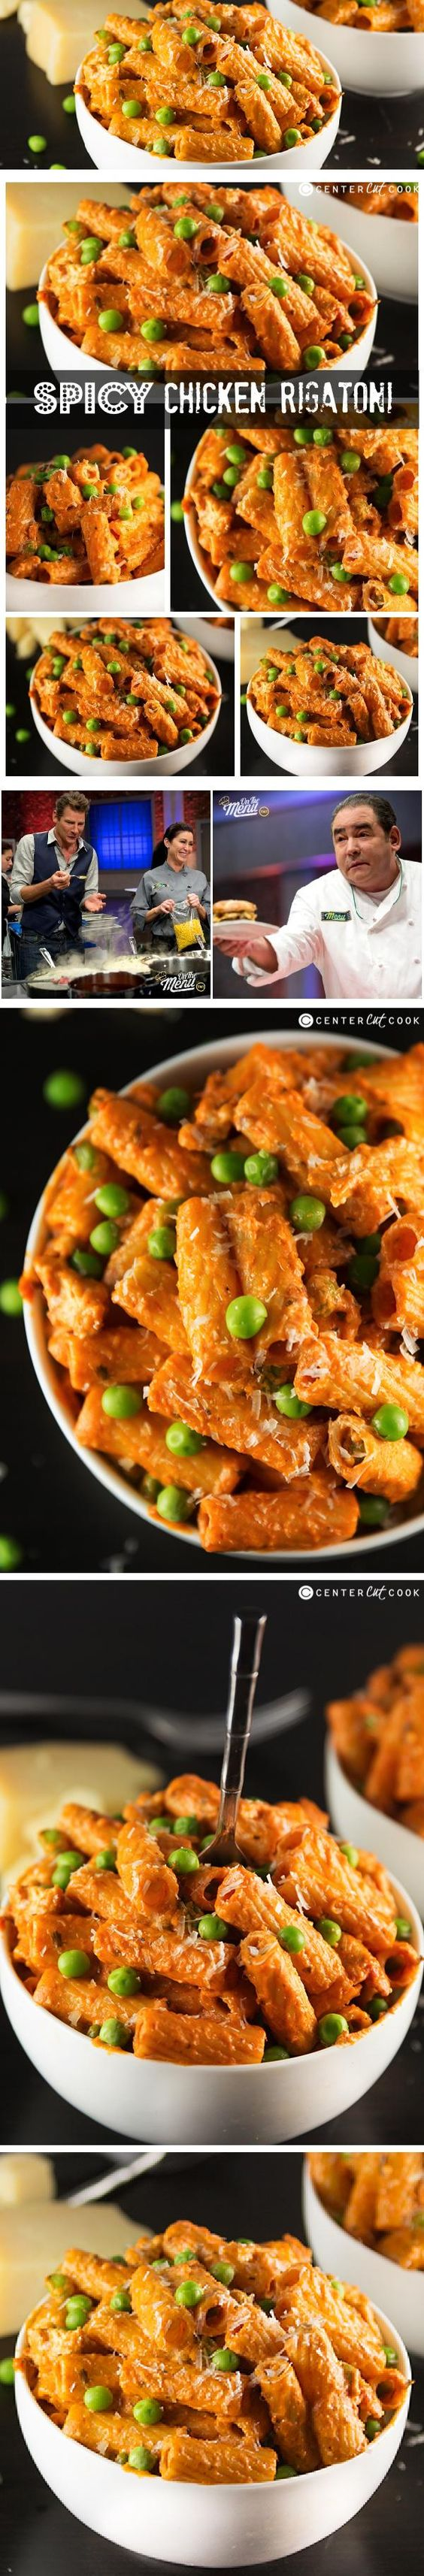 SPICY CHICKEN, tons of garlic, a combo of alfredo and marinara sauce, and a handful of peas make up this SPICY CHICKEN RIGATONI, one of my favorite pasta DISHES of all time from the restaurant BUCA DI Beppo.